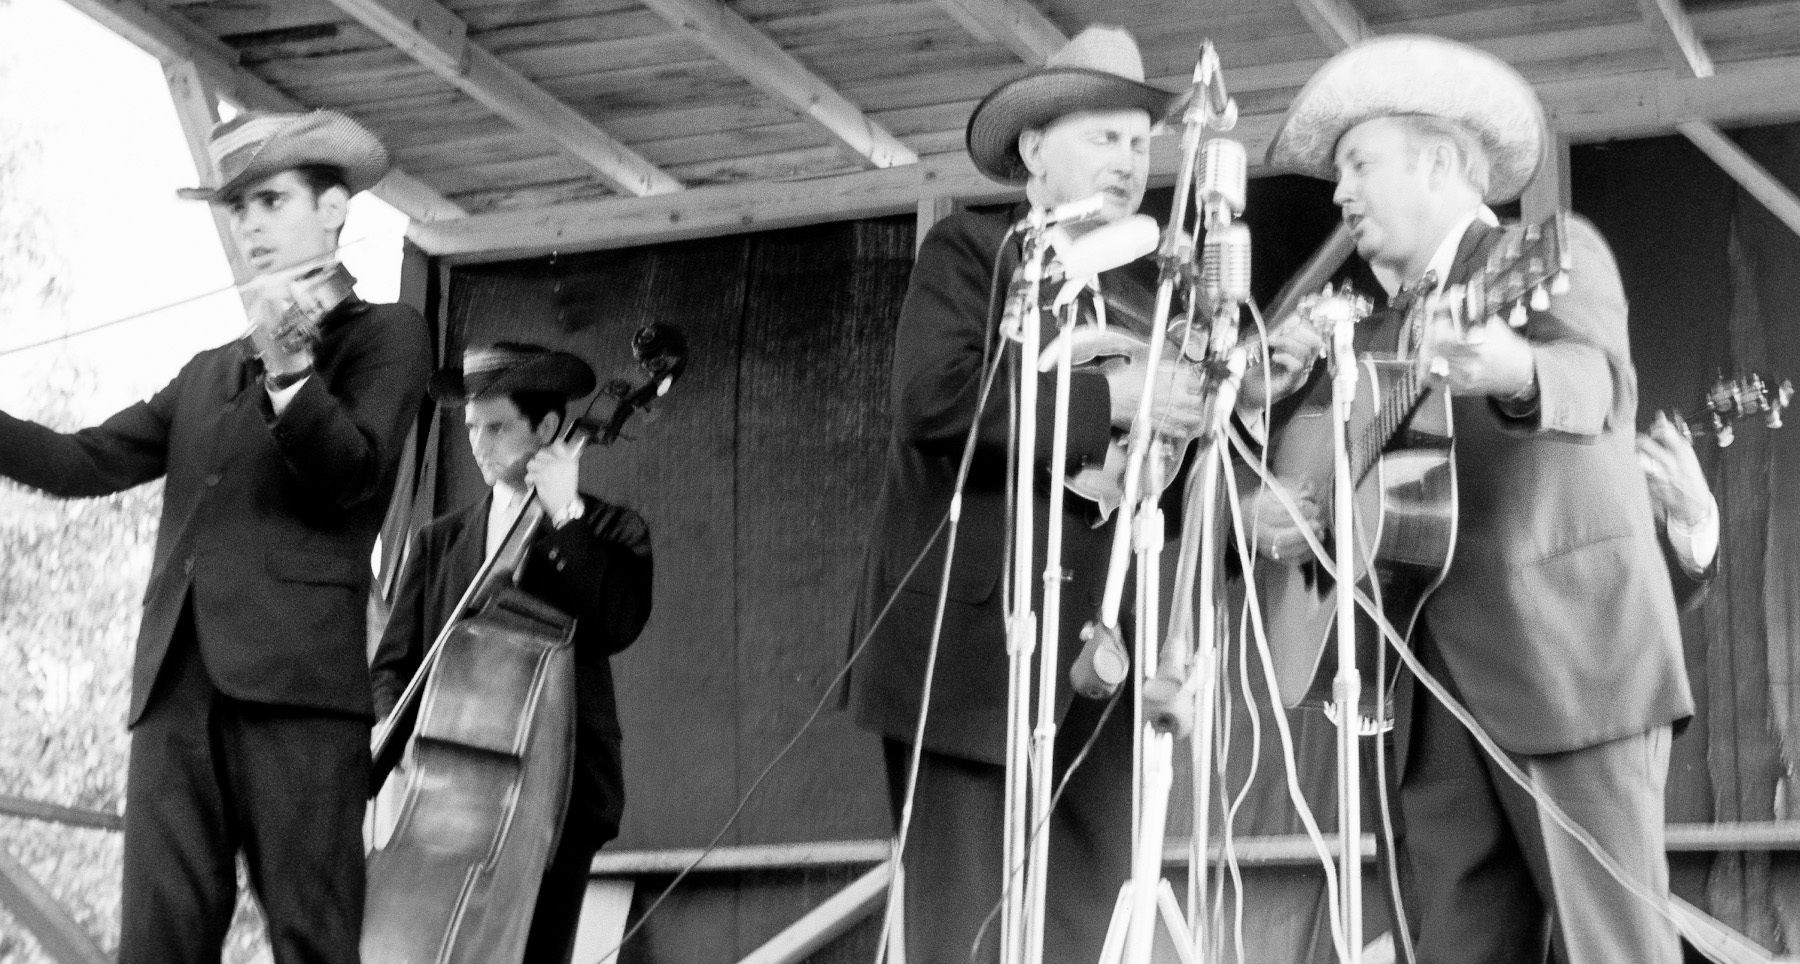 Bill Monroe and Jimmy Martin at Roanoke, VA 1965